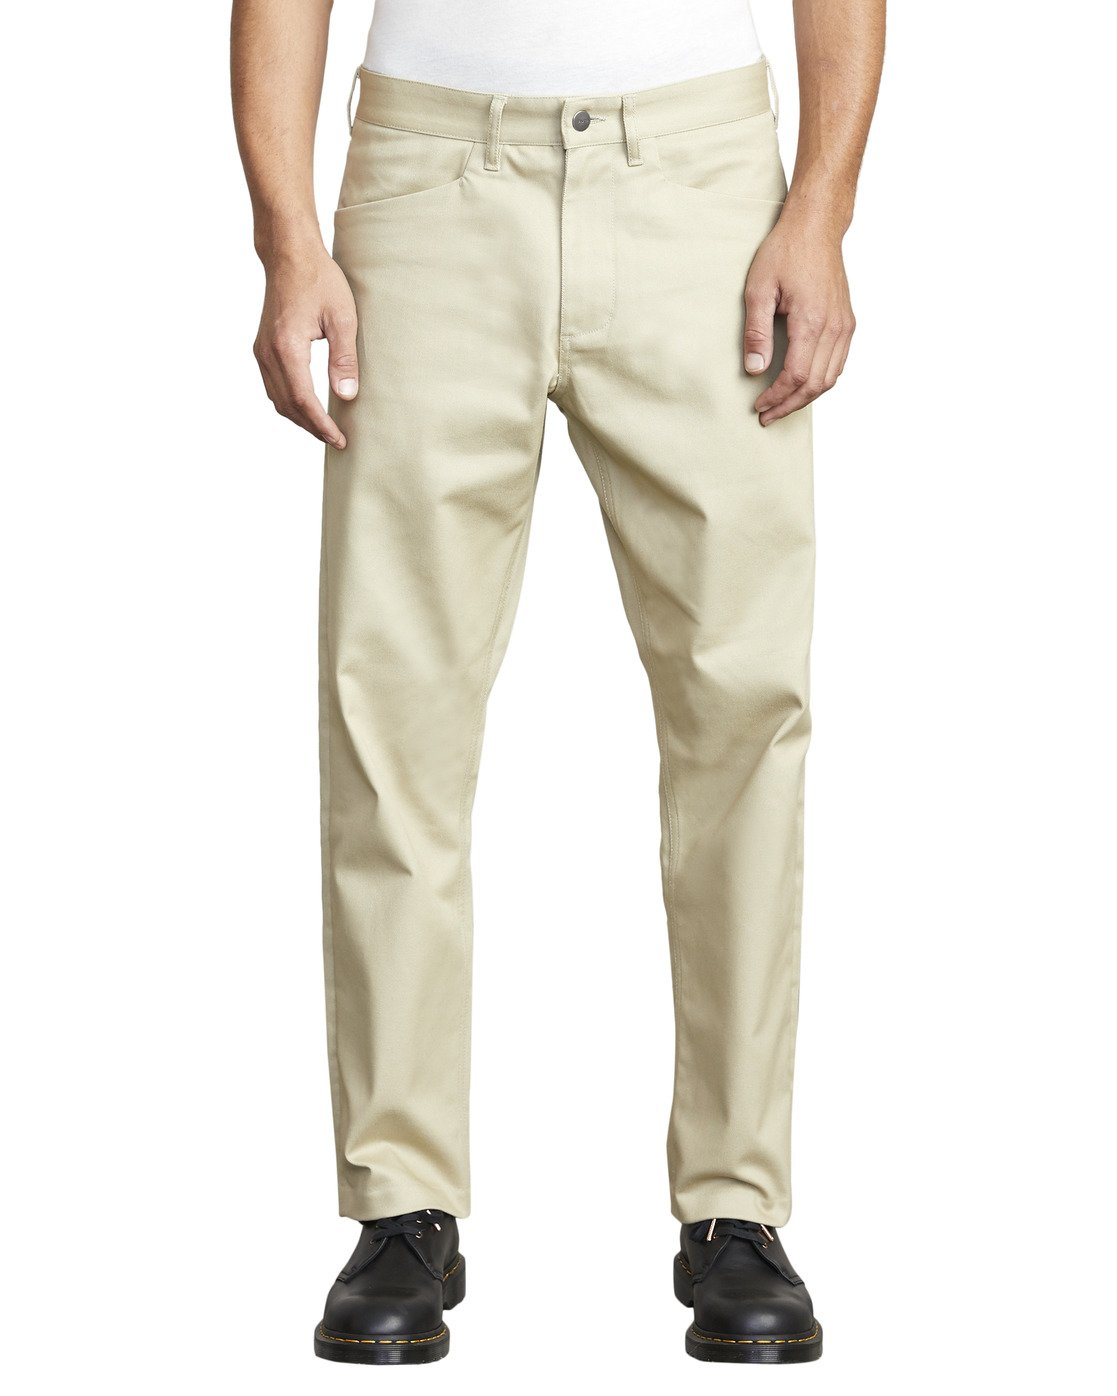 8 NEW DAWN MODERN STRAIGHT FIT PANT Beige M3073RPR RVCA